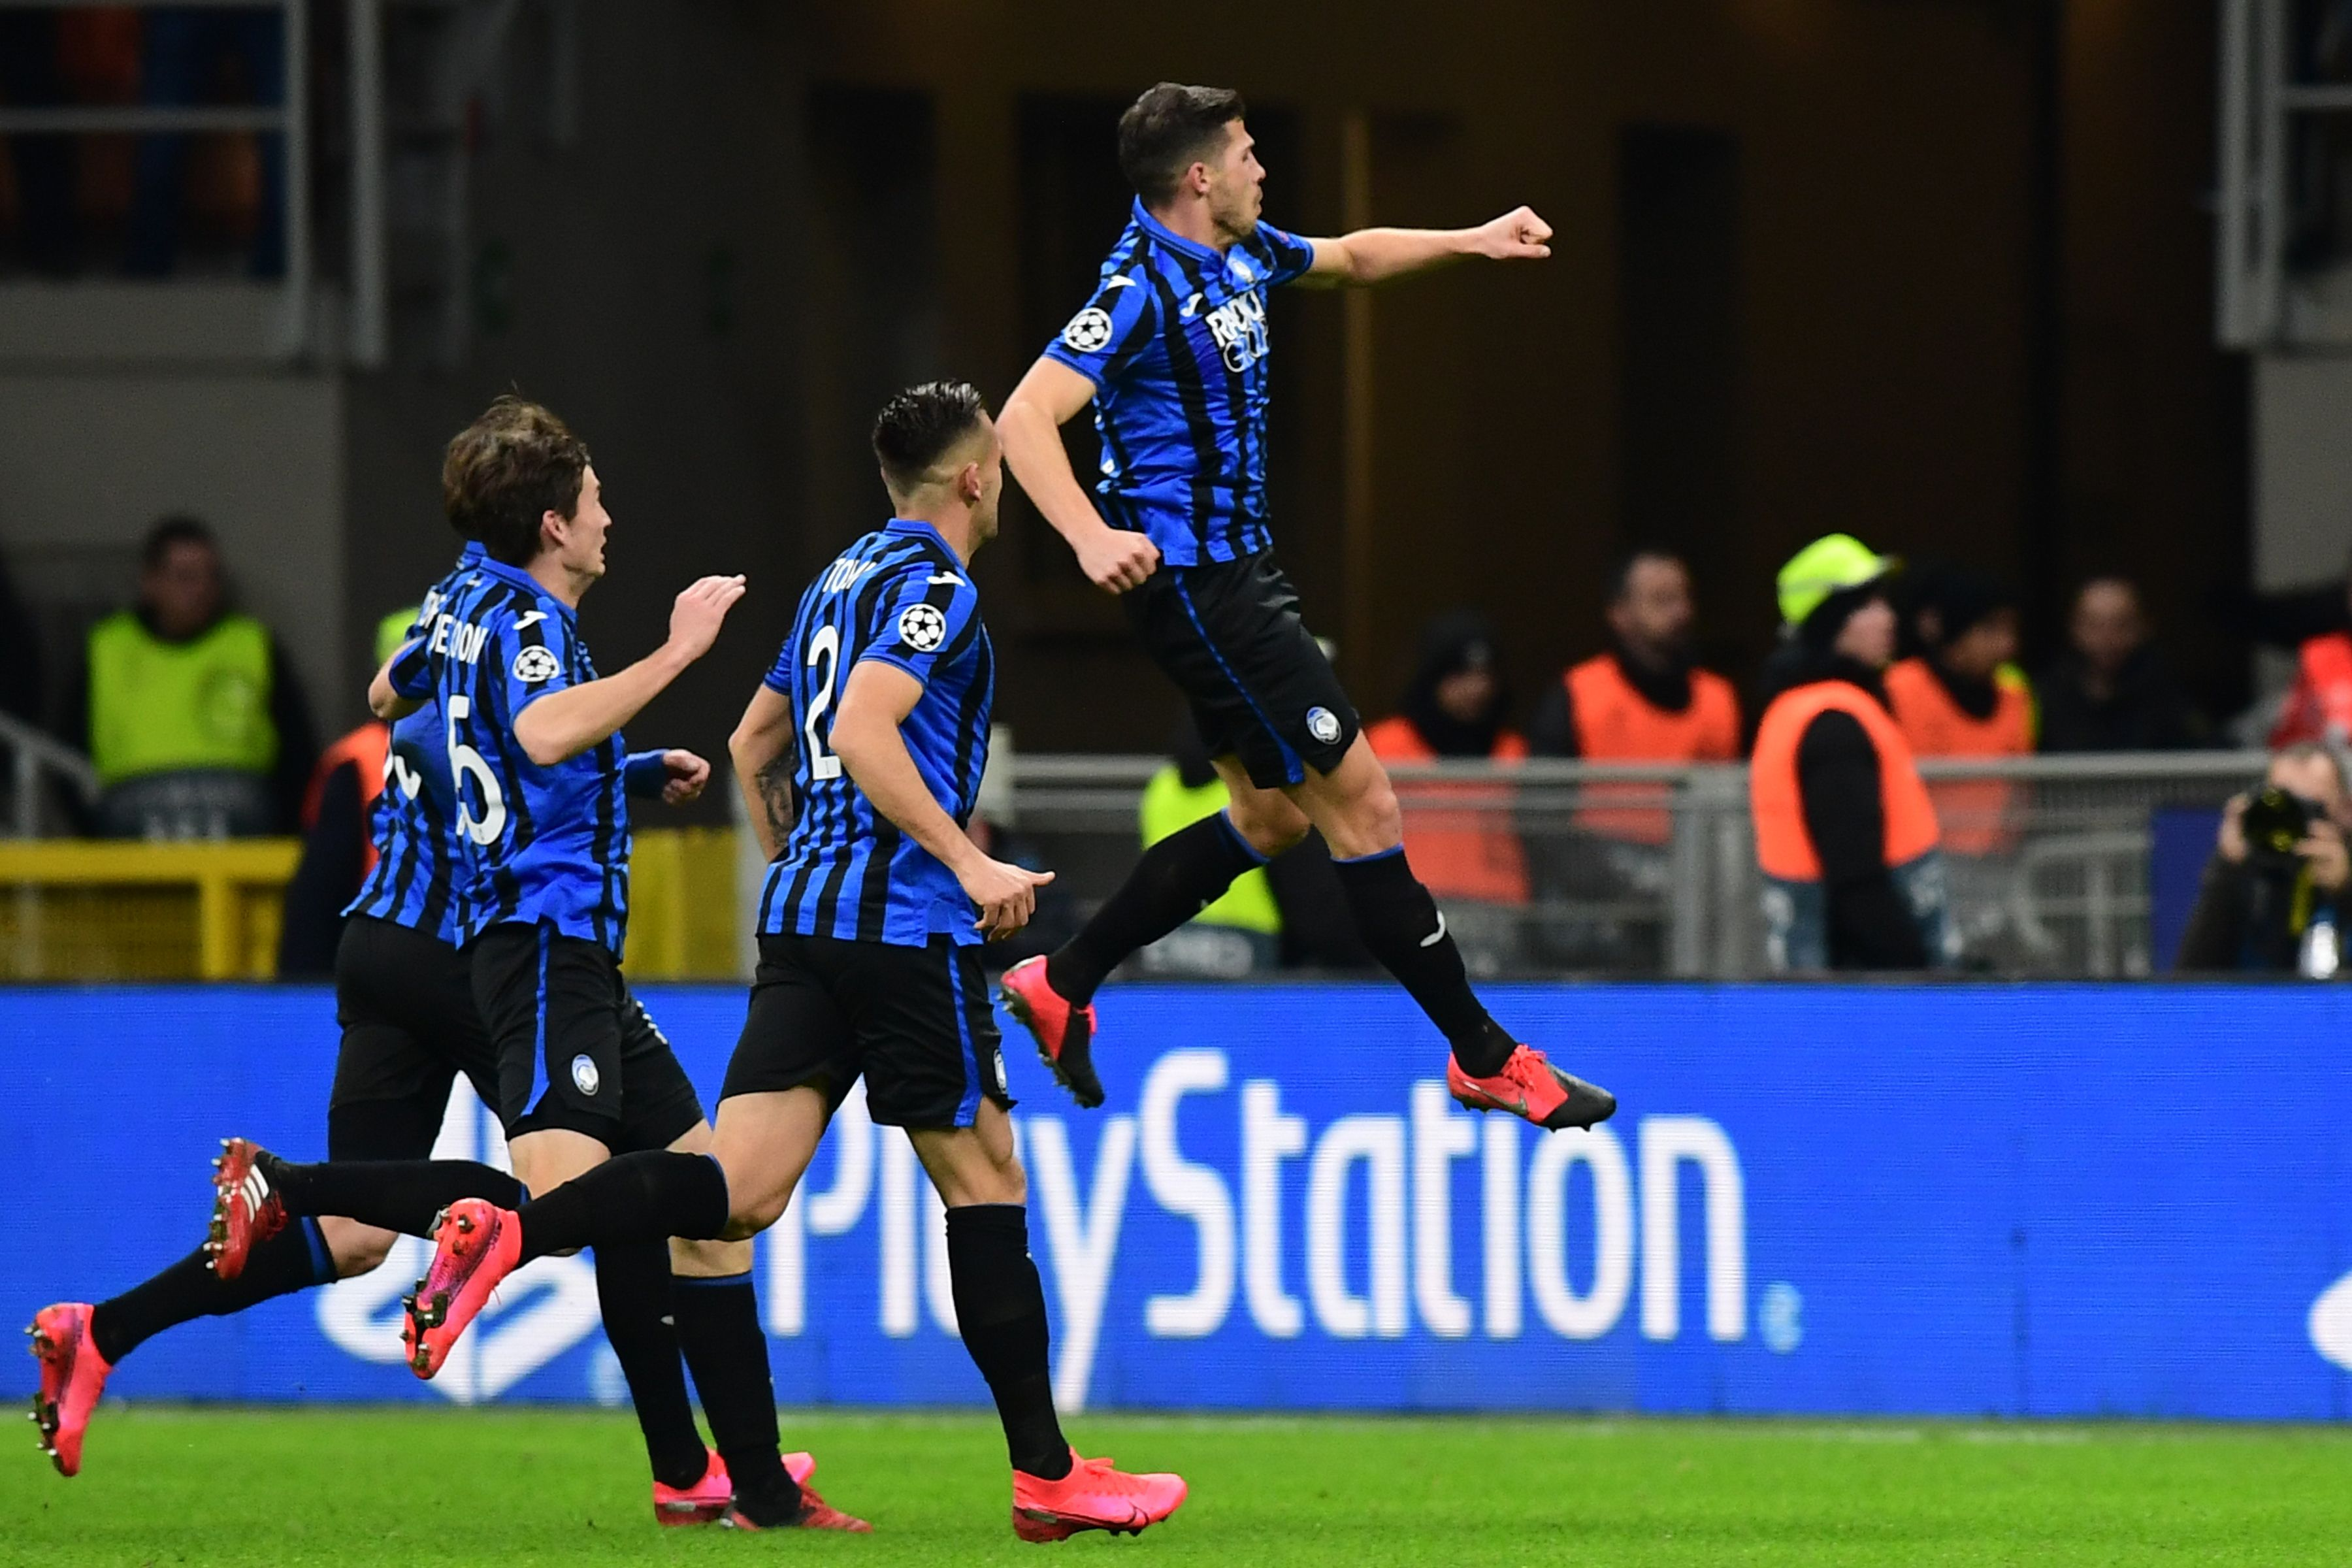 Atalanta ran out deserved winners against a poor Valencia side.